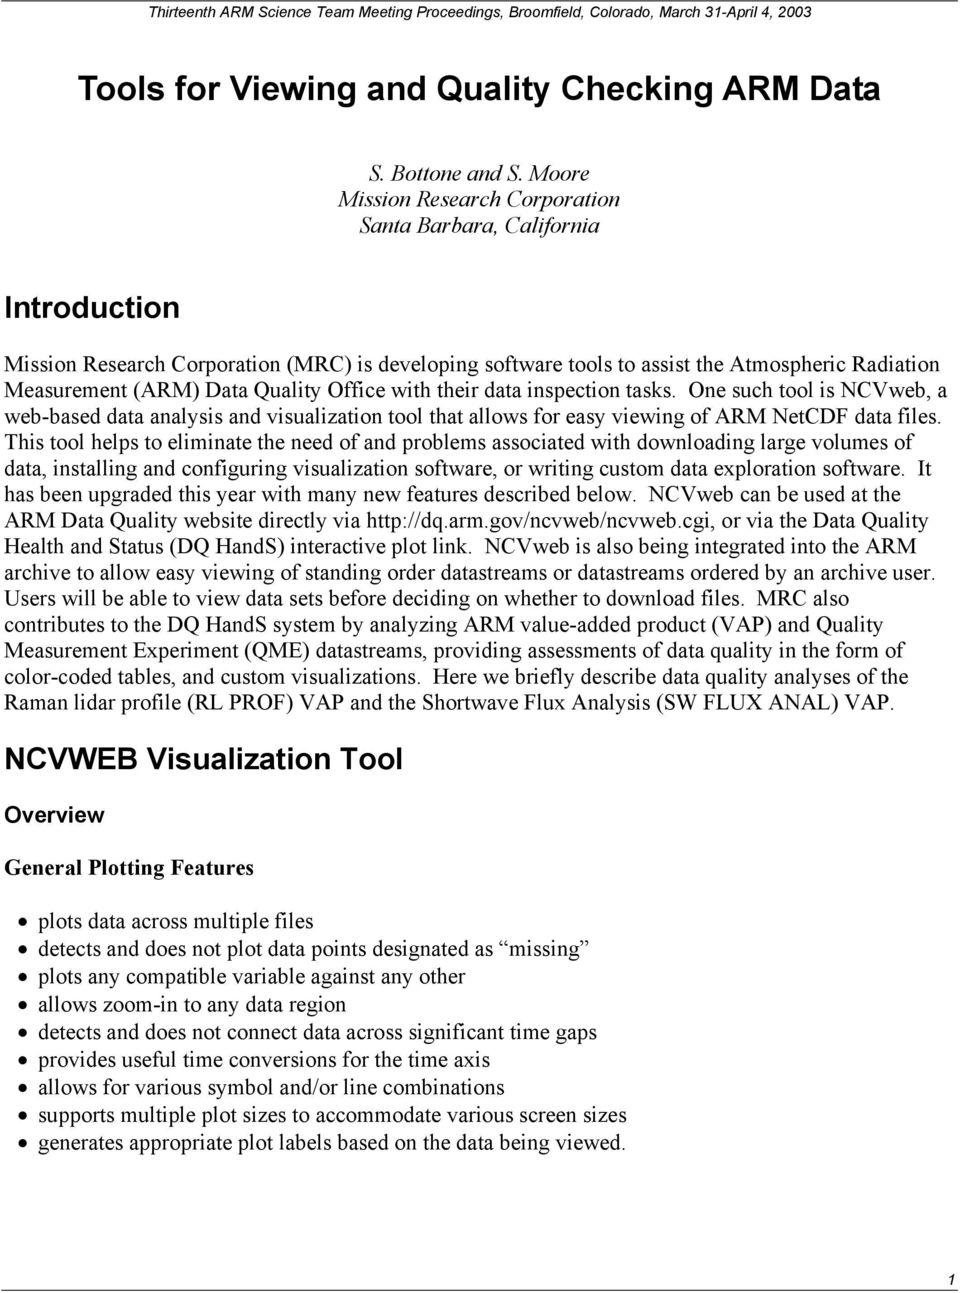 Quality Office with their data inspection tasks. One such tool is NCVweb, a web-based data analysis and visualization tool that allows for easy viewing of ARM NetCDF data files.